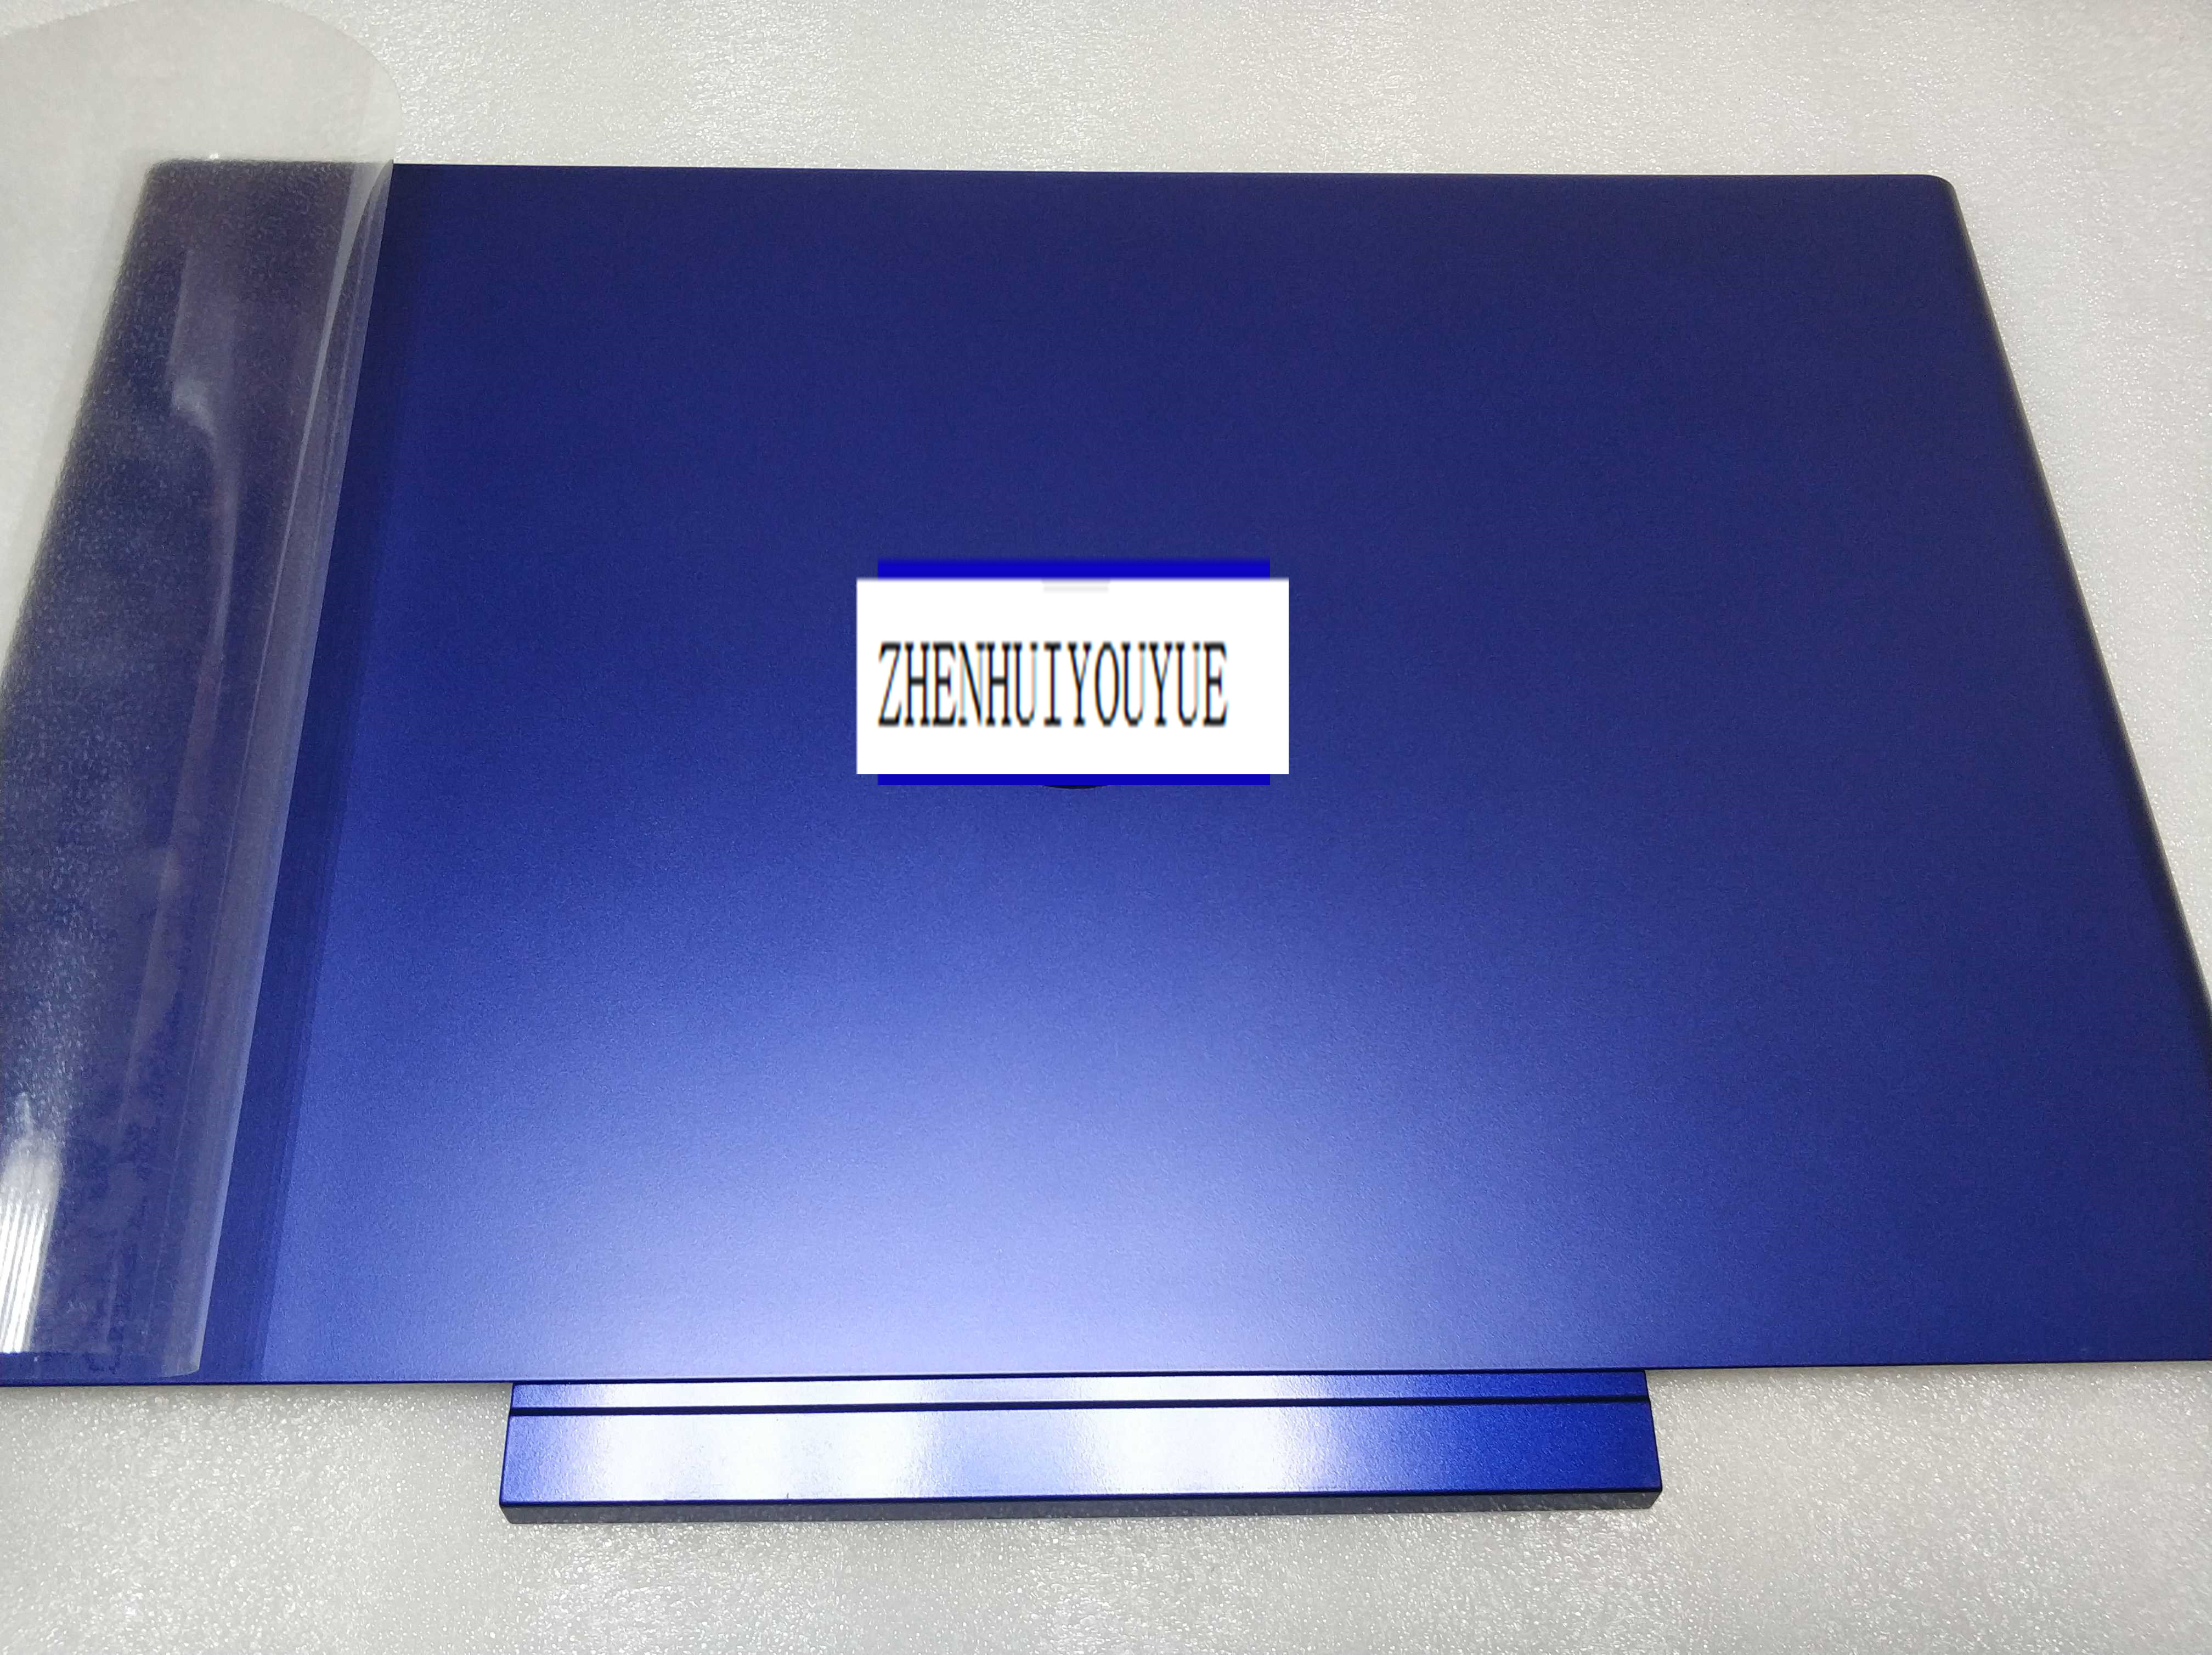 new for DELL Vostro 7570 V7570 top cover A case image